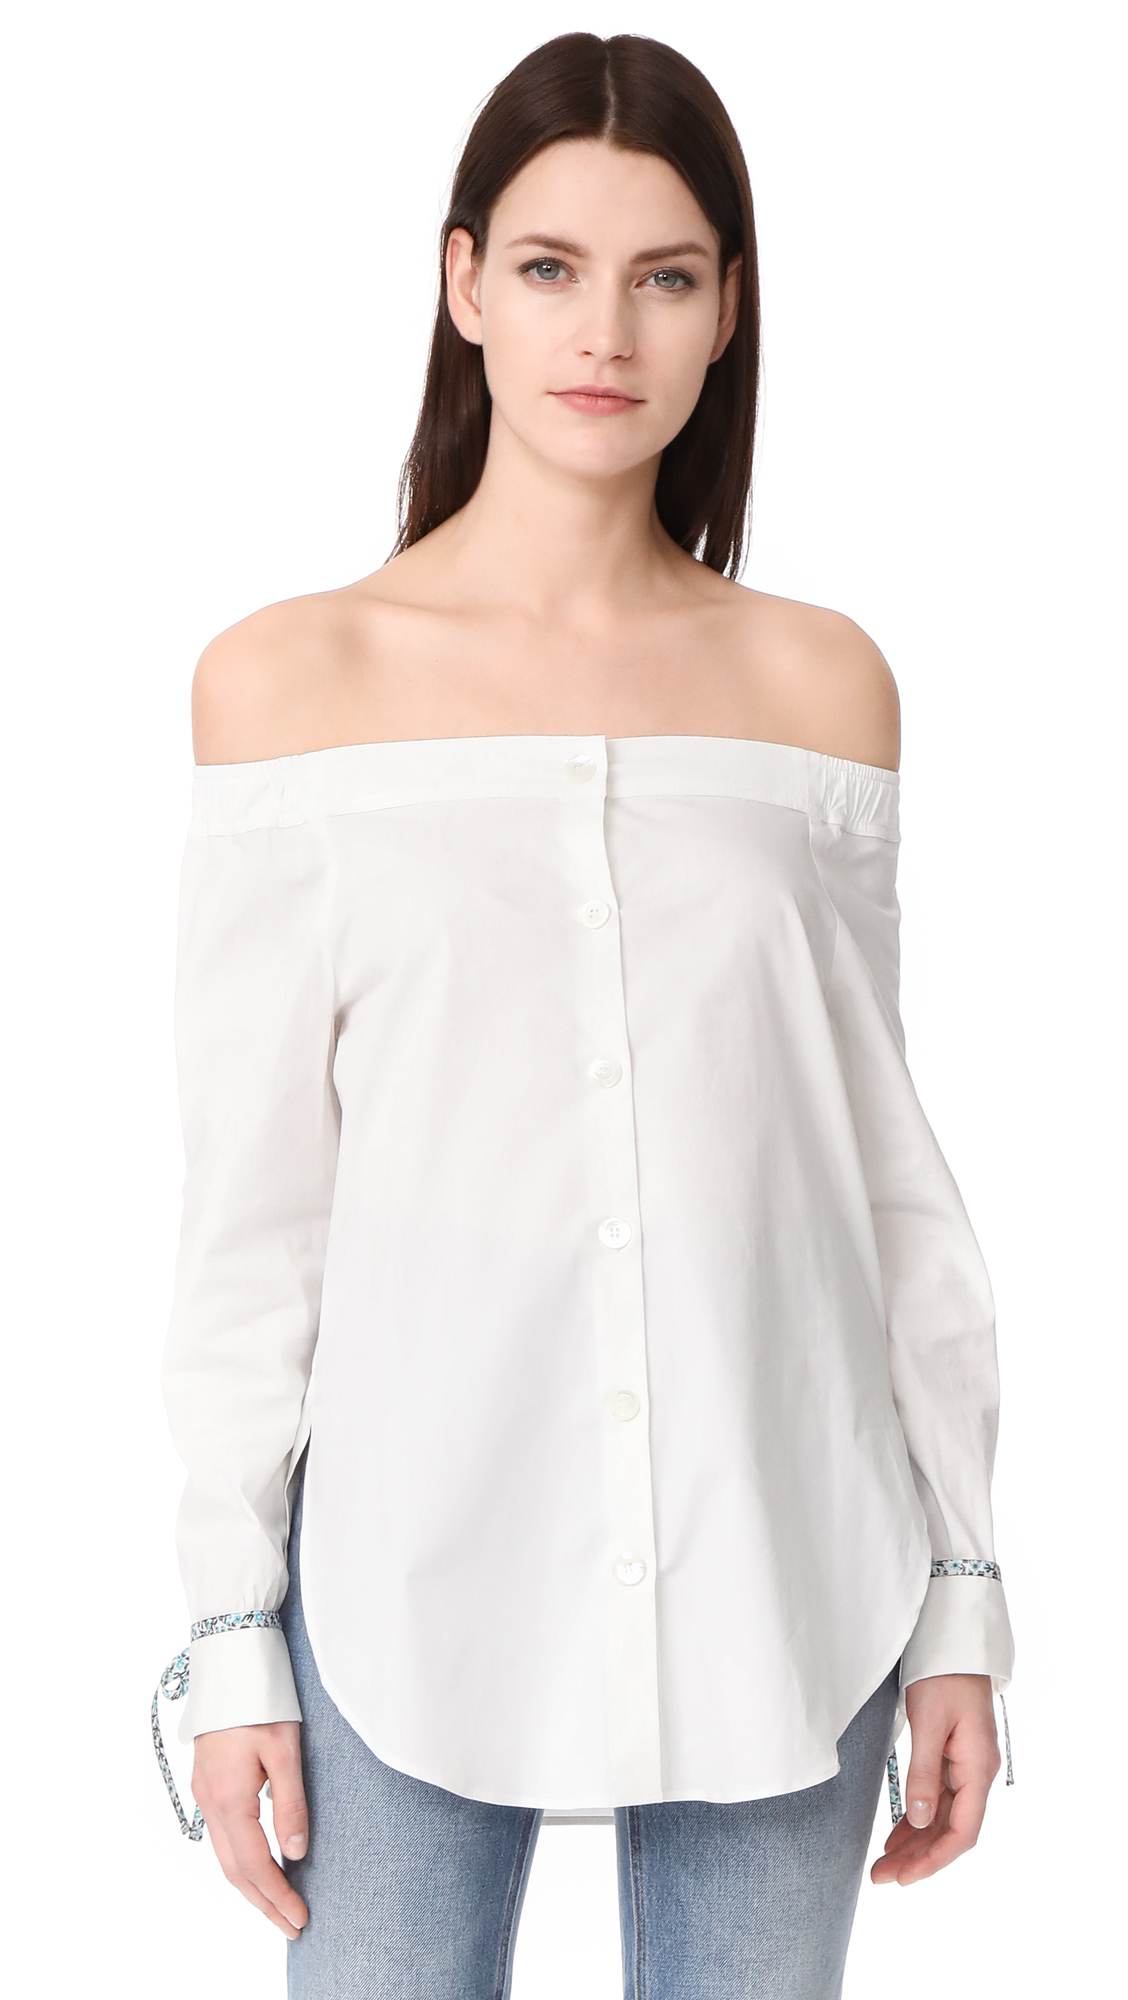 Hilfiger Collection Off Shoulder Long Sleeve Shirt - Marshmallow/Multi